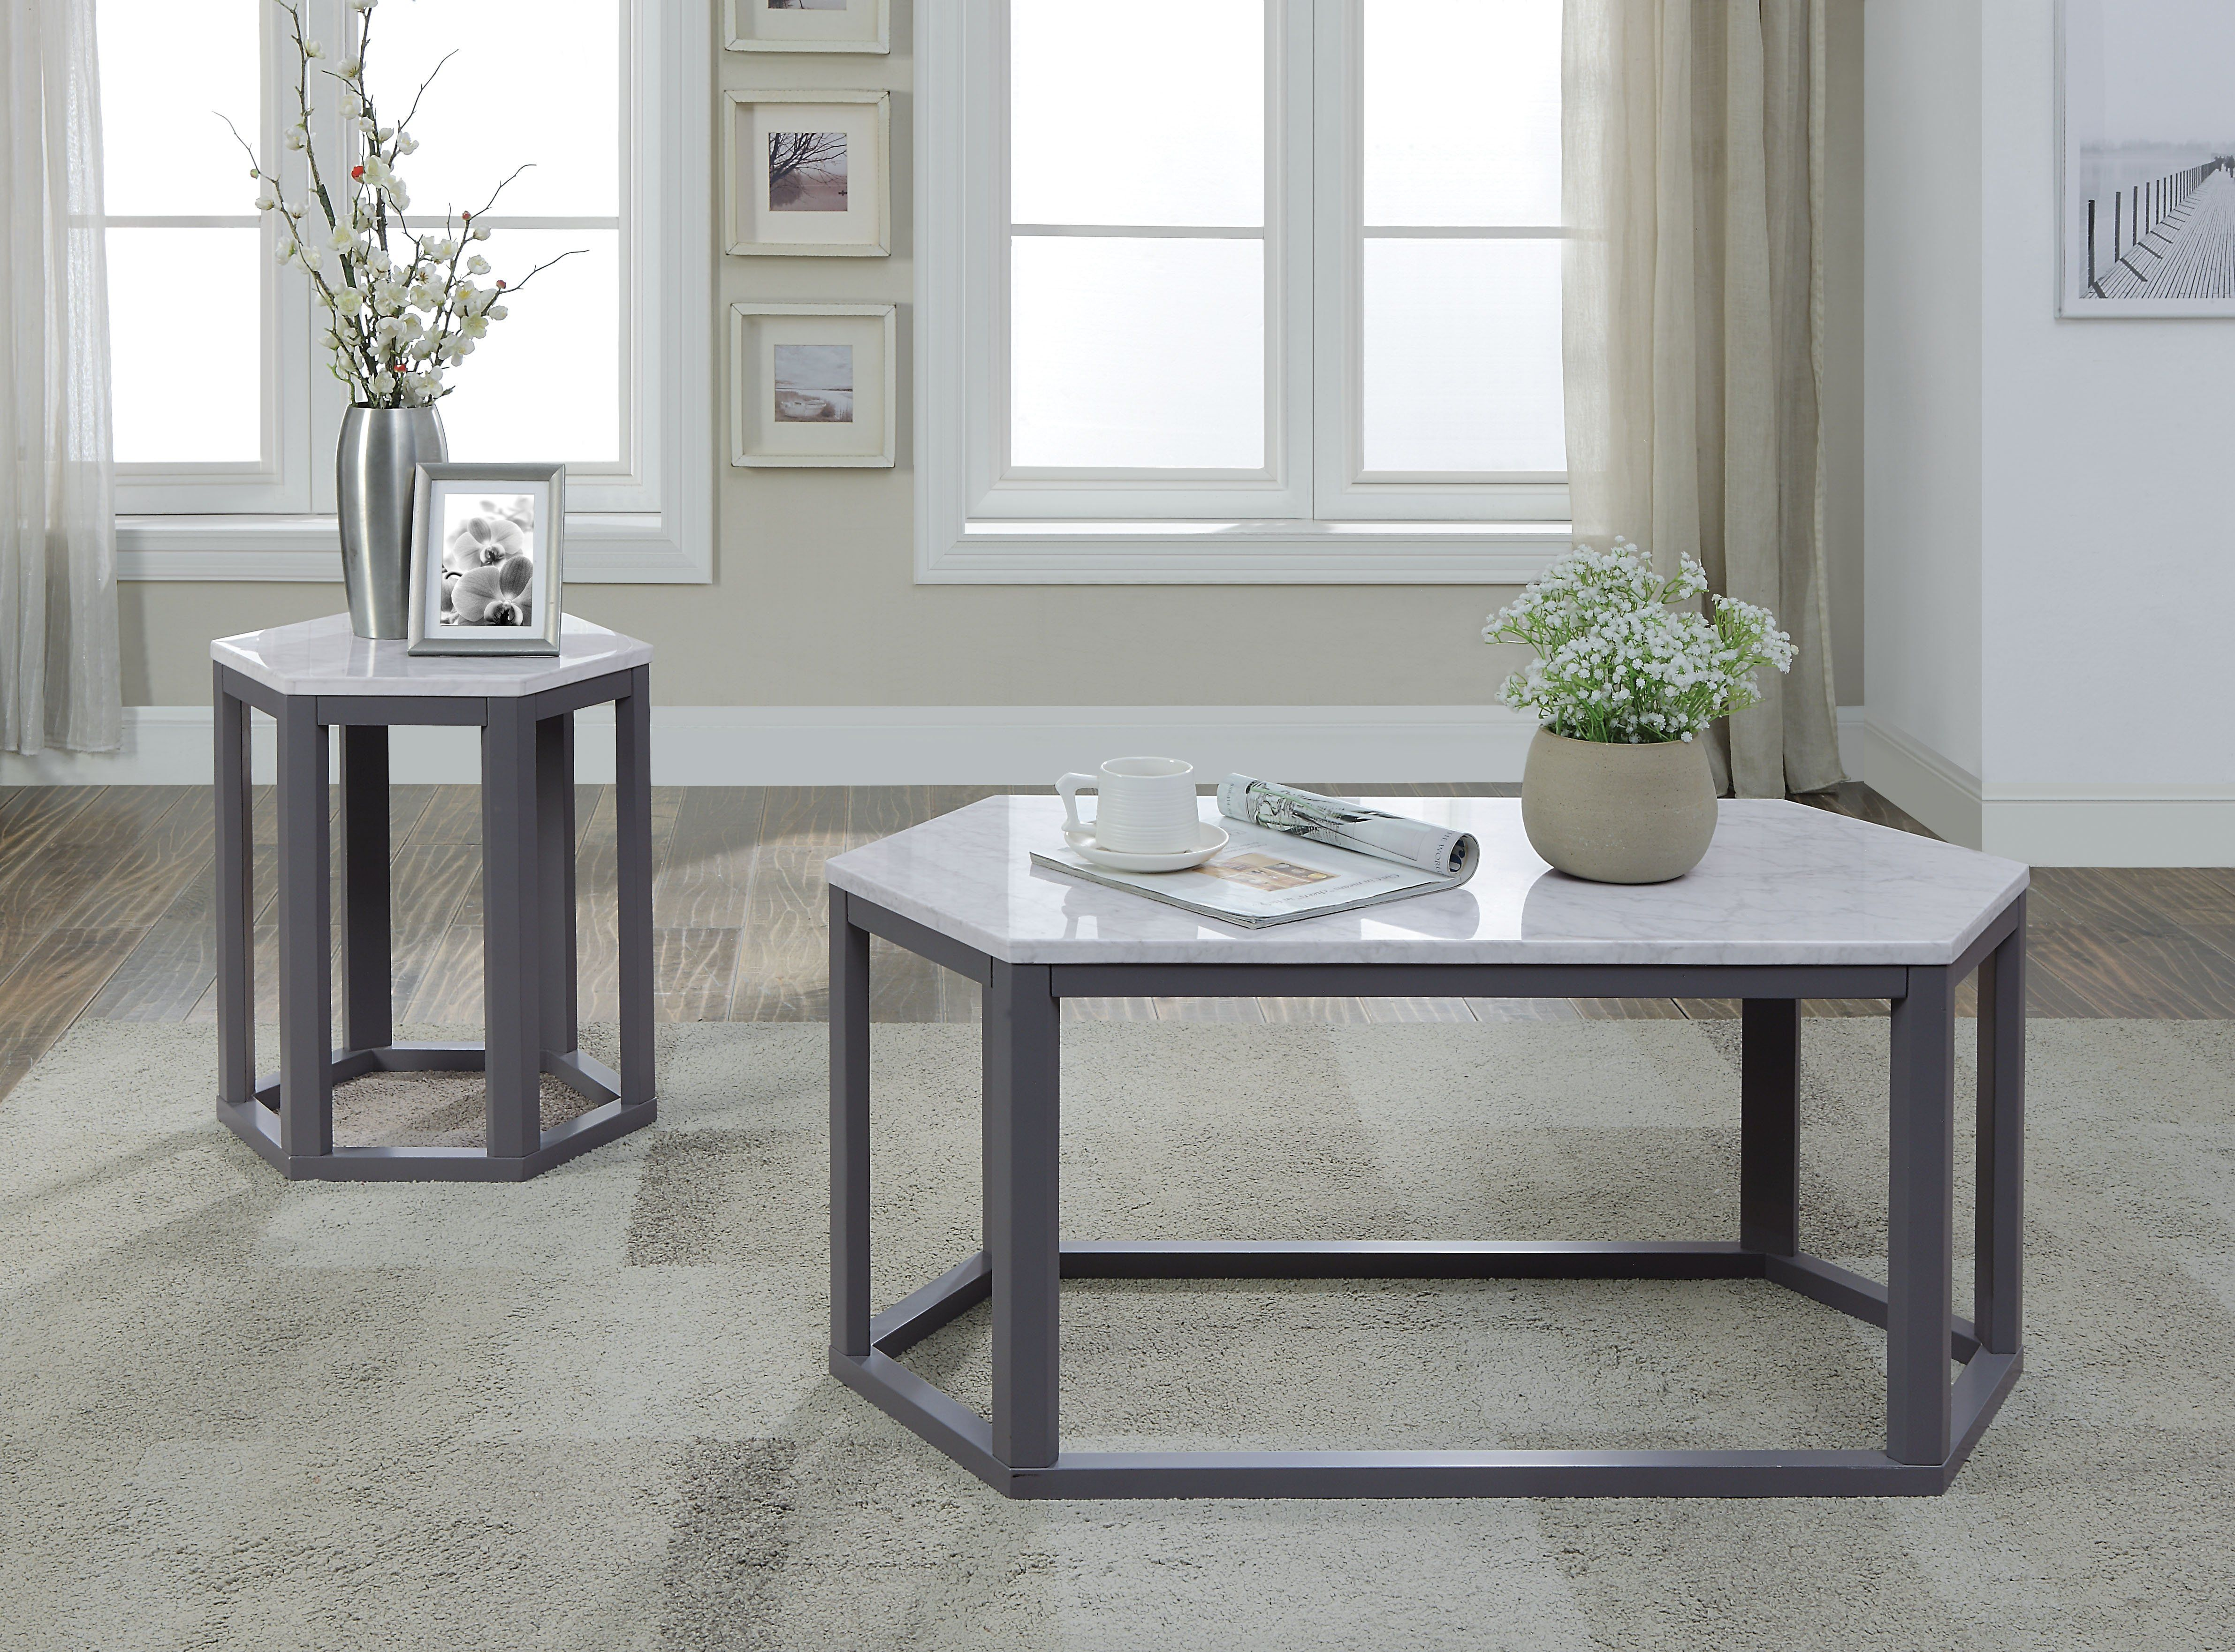 Reon Marble Gray Coffee Table In 2021 Coffee Table 3 Piece Coffee Table Set Wooden Coffee Table [ 3522 x 4764 Pixel ]